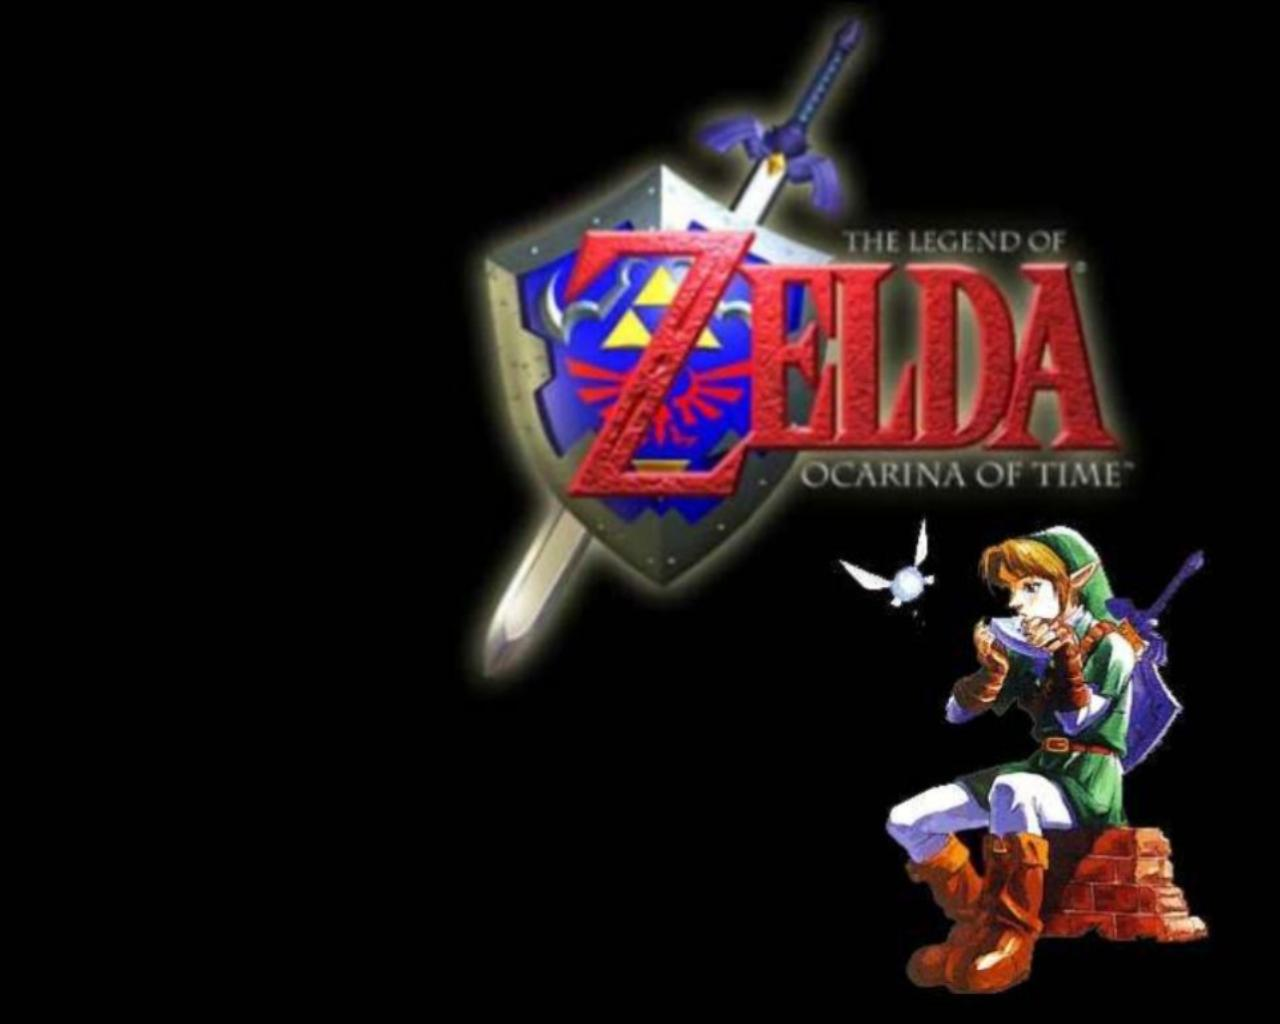 Imágenes de The Legend of Zelda: Ocarina of Time de 3DS  y N64 [Comparativa]